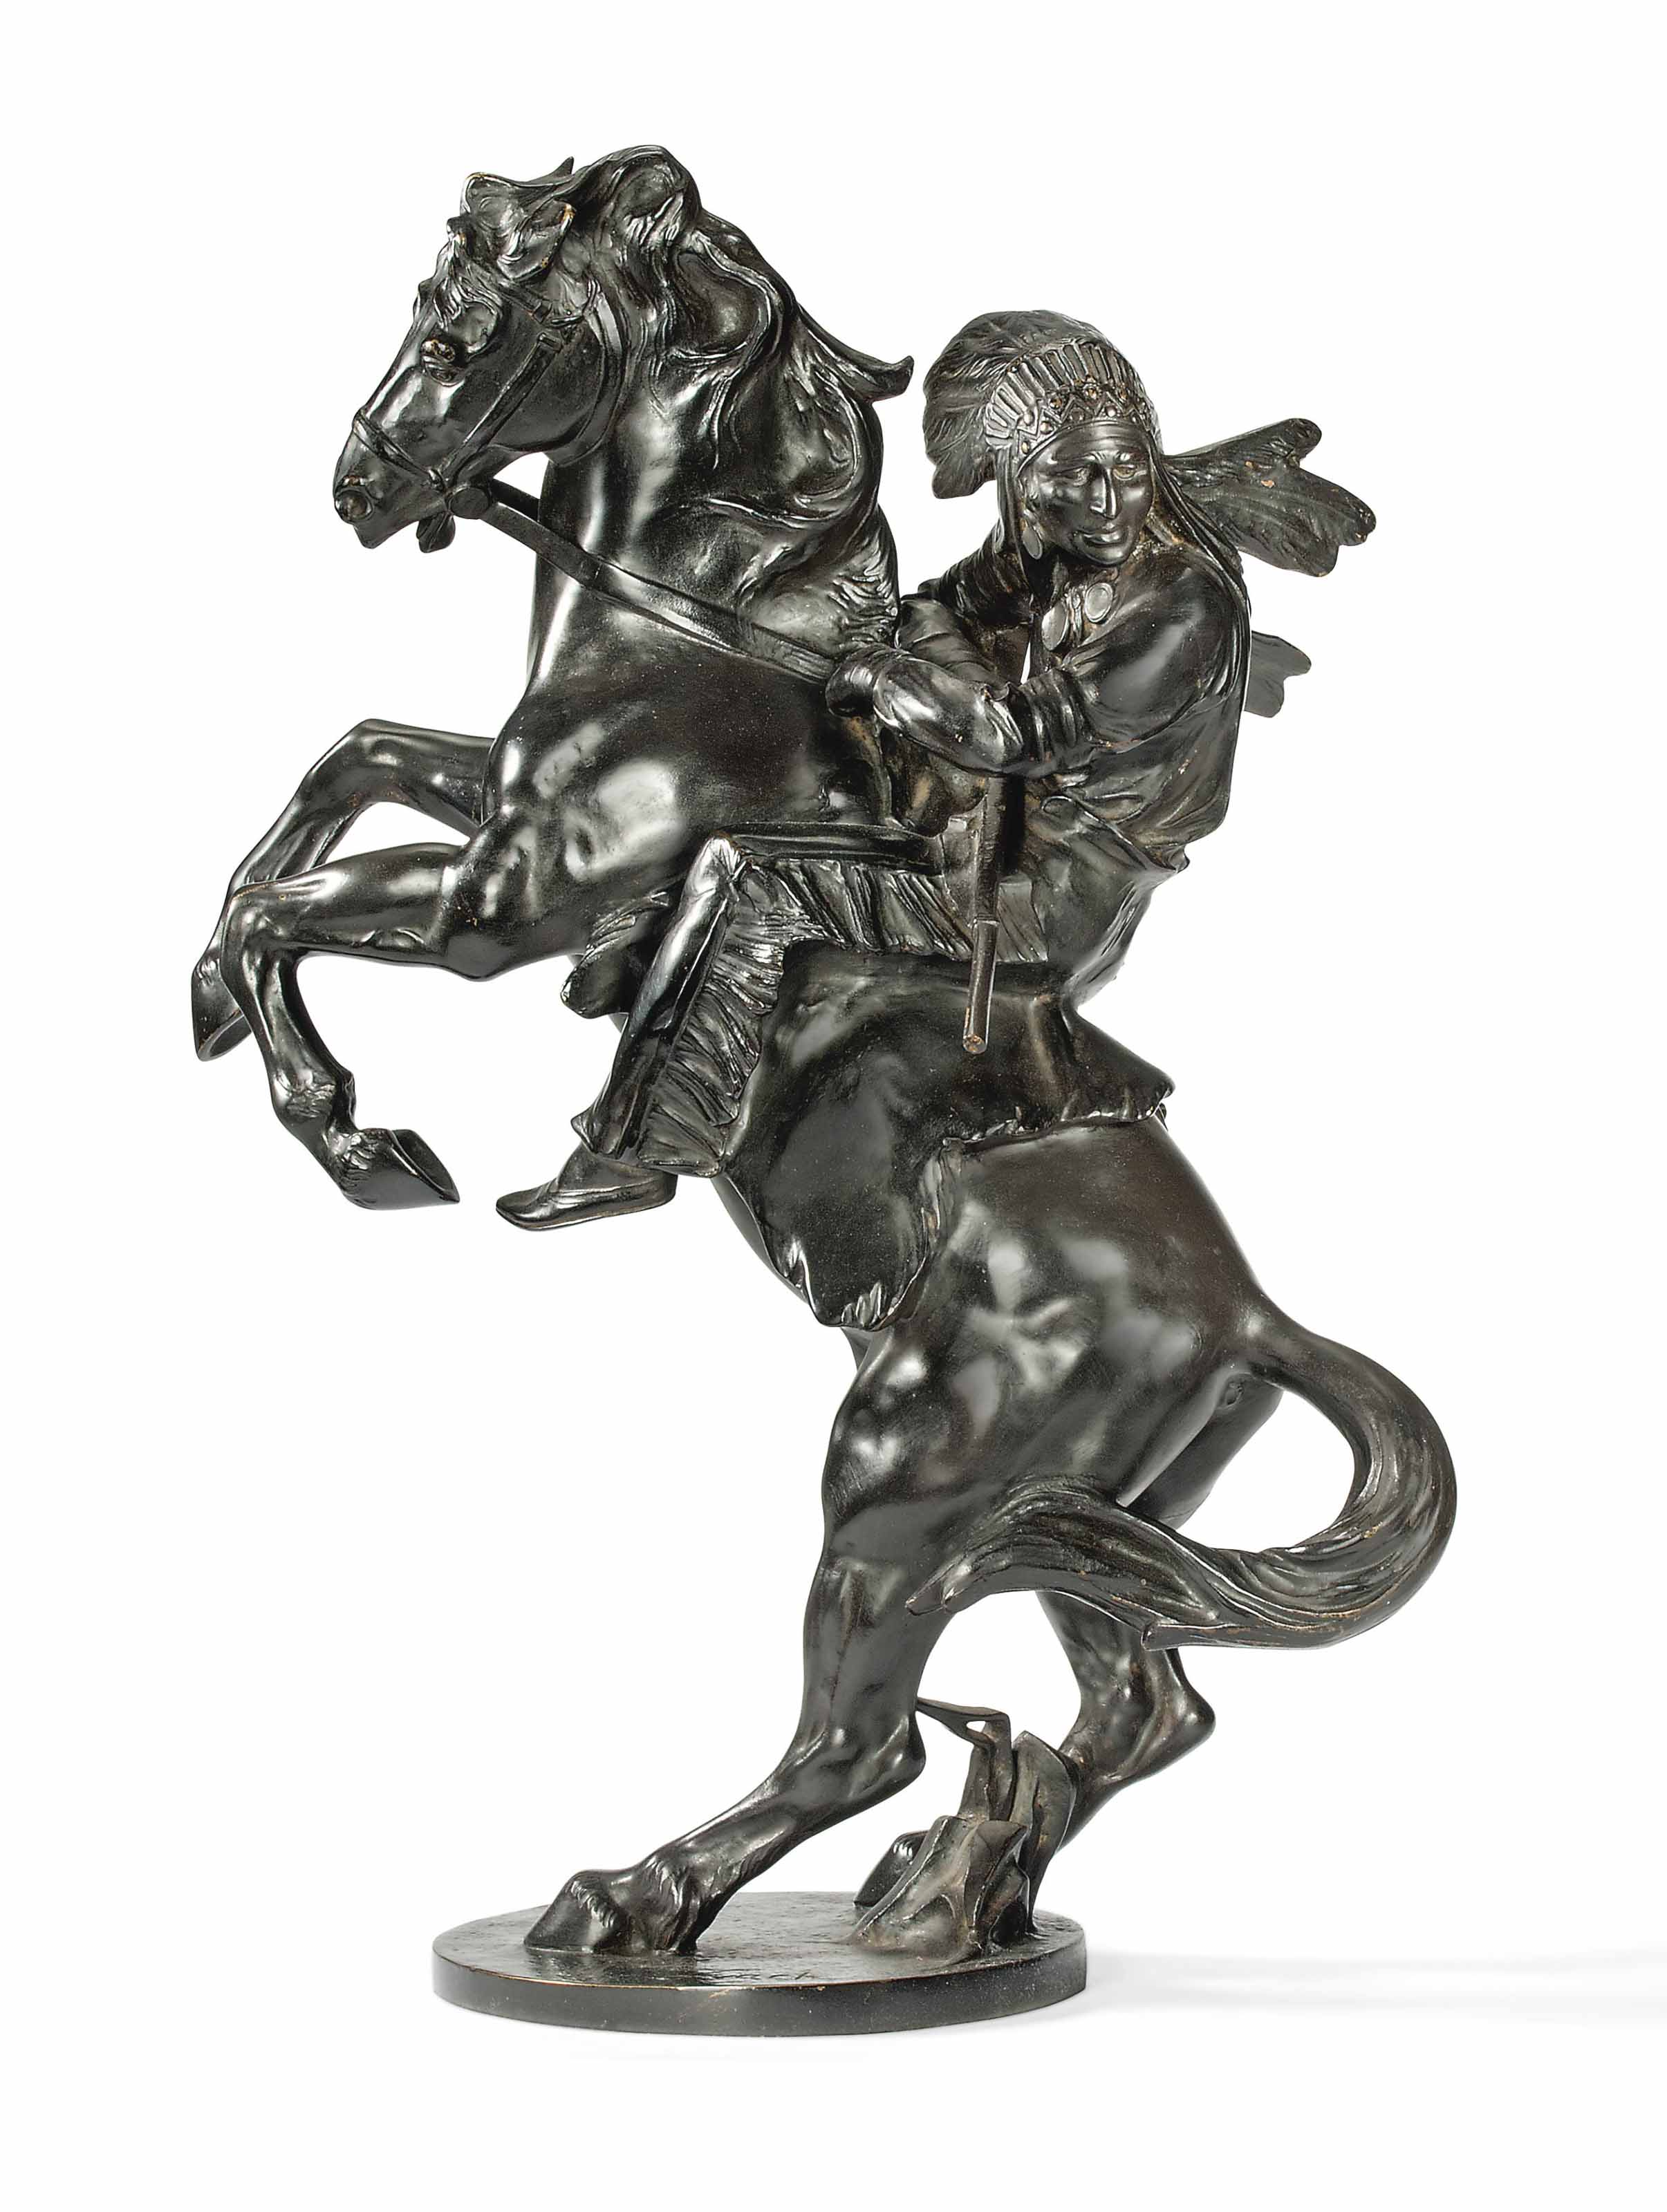 'INDIAN RIDER' A LARGE PATINATED BRONZE GROUP BY BRUNO ZACH